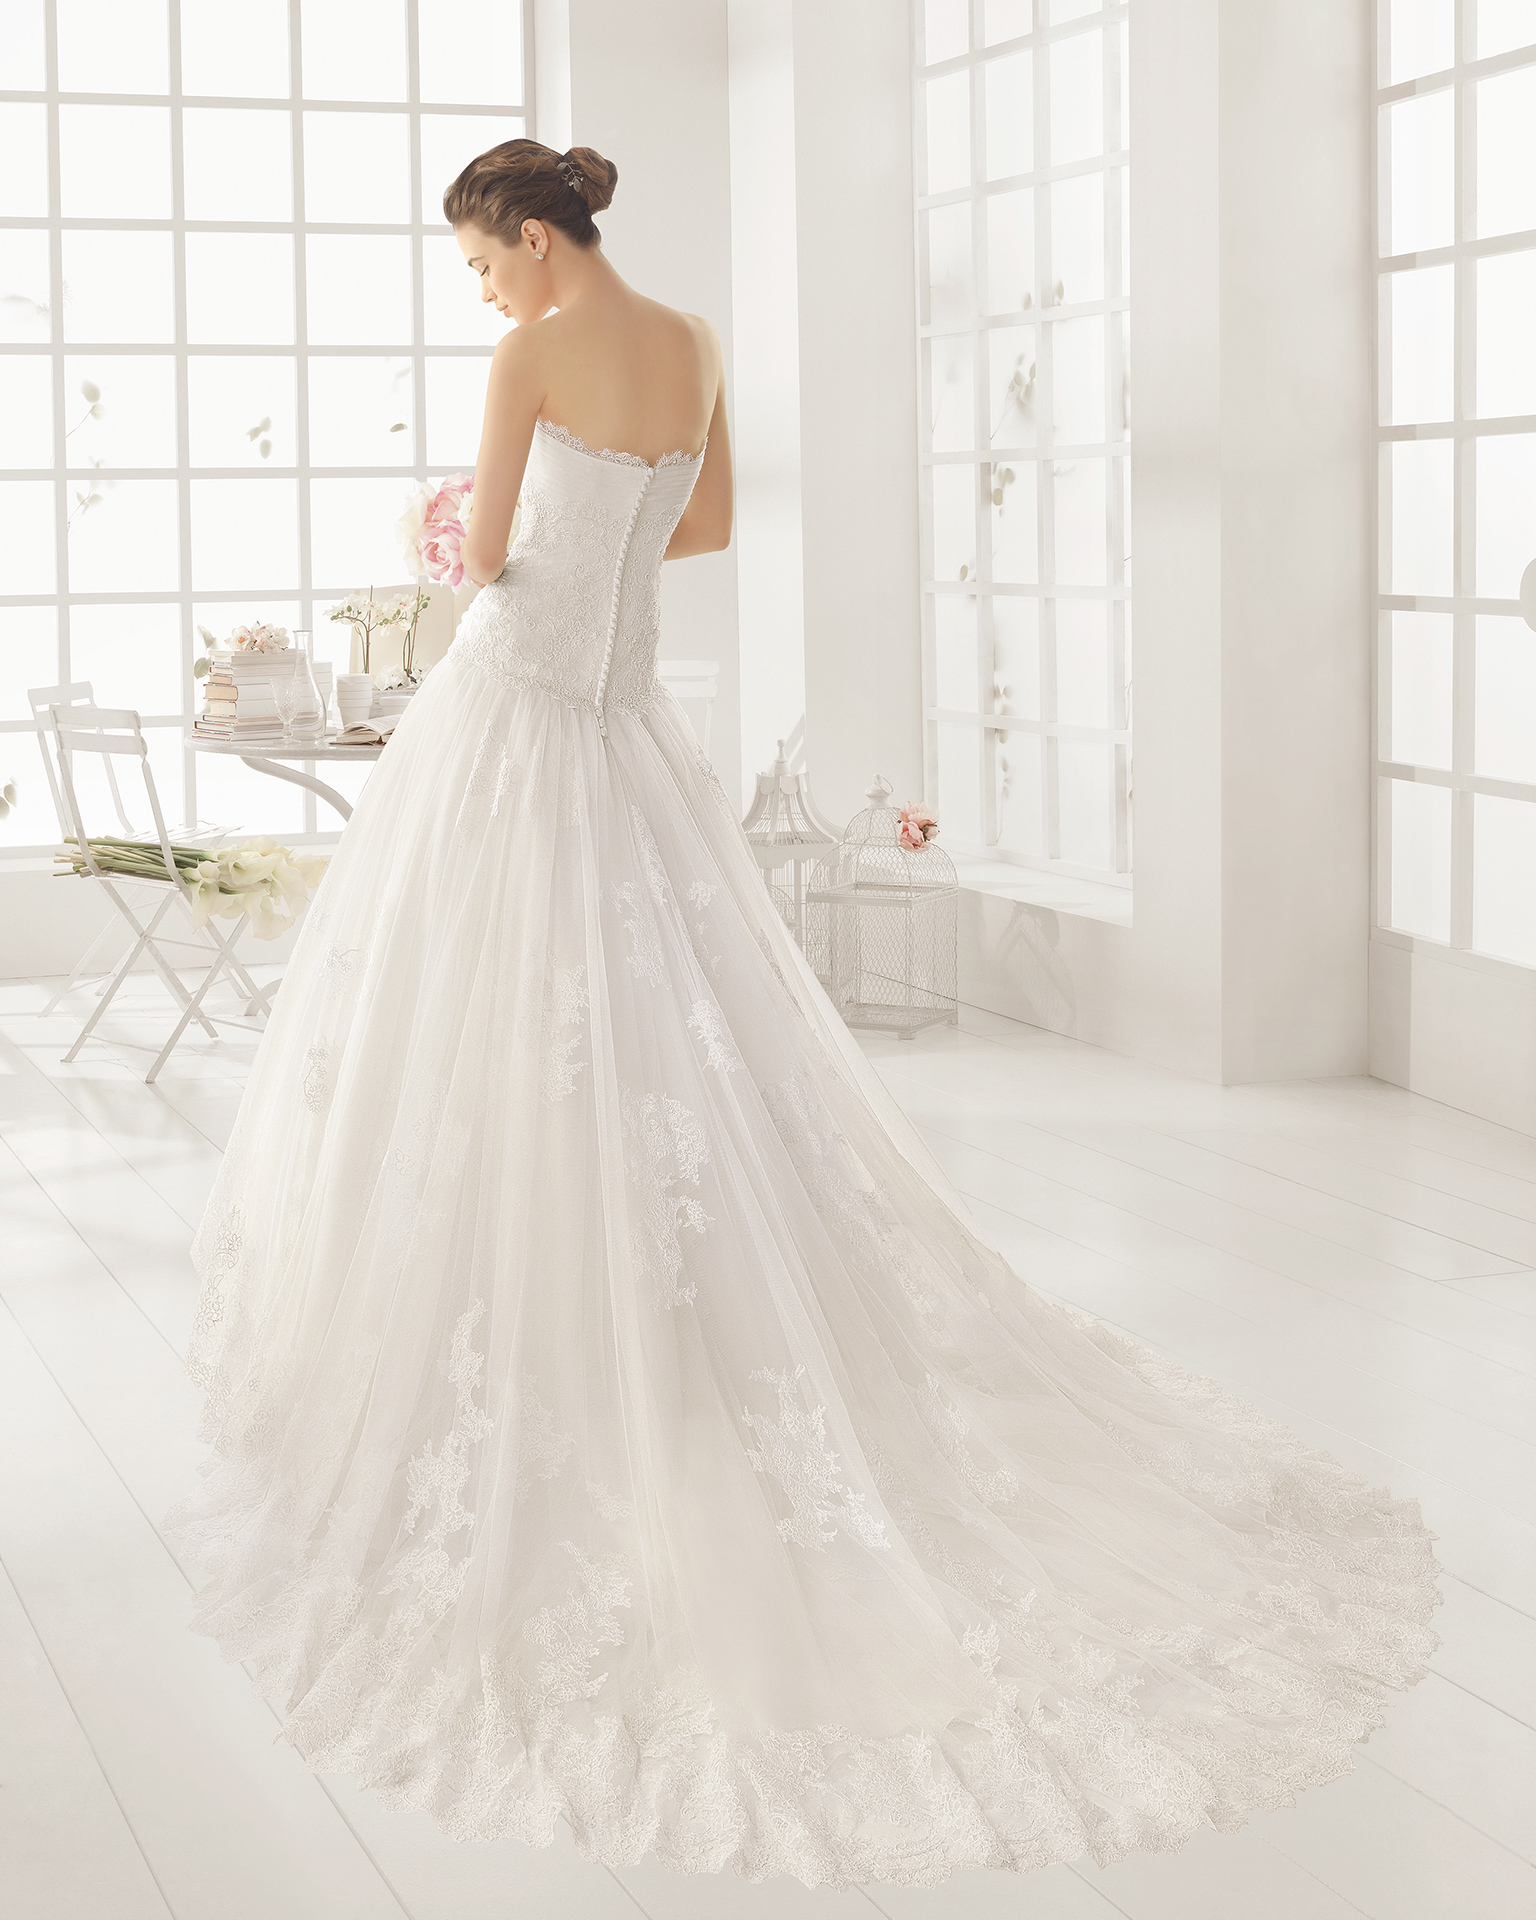 OLOT beaded lace and tulle wedding dress.